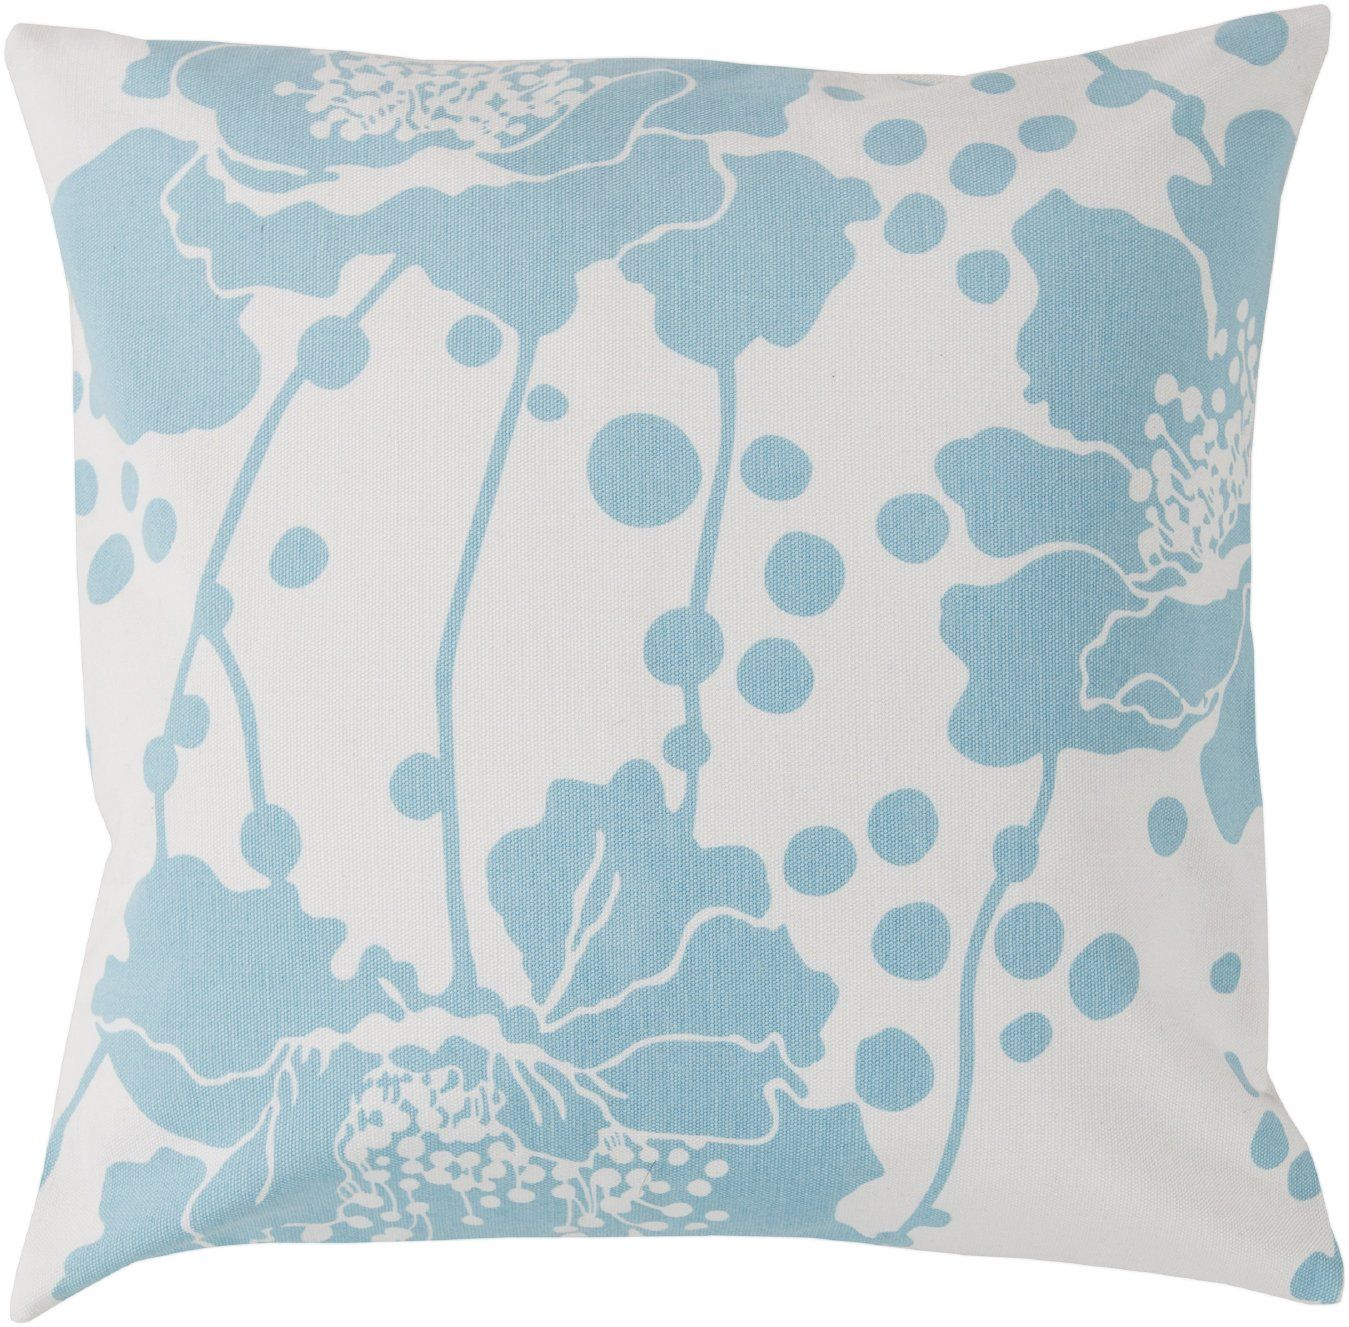 Florence Broadhurst Spotted Floral FB-017 Sky Blue Floral Pillow - GiiStores.com